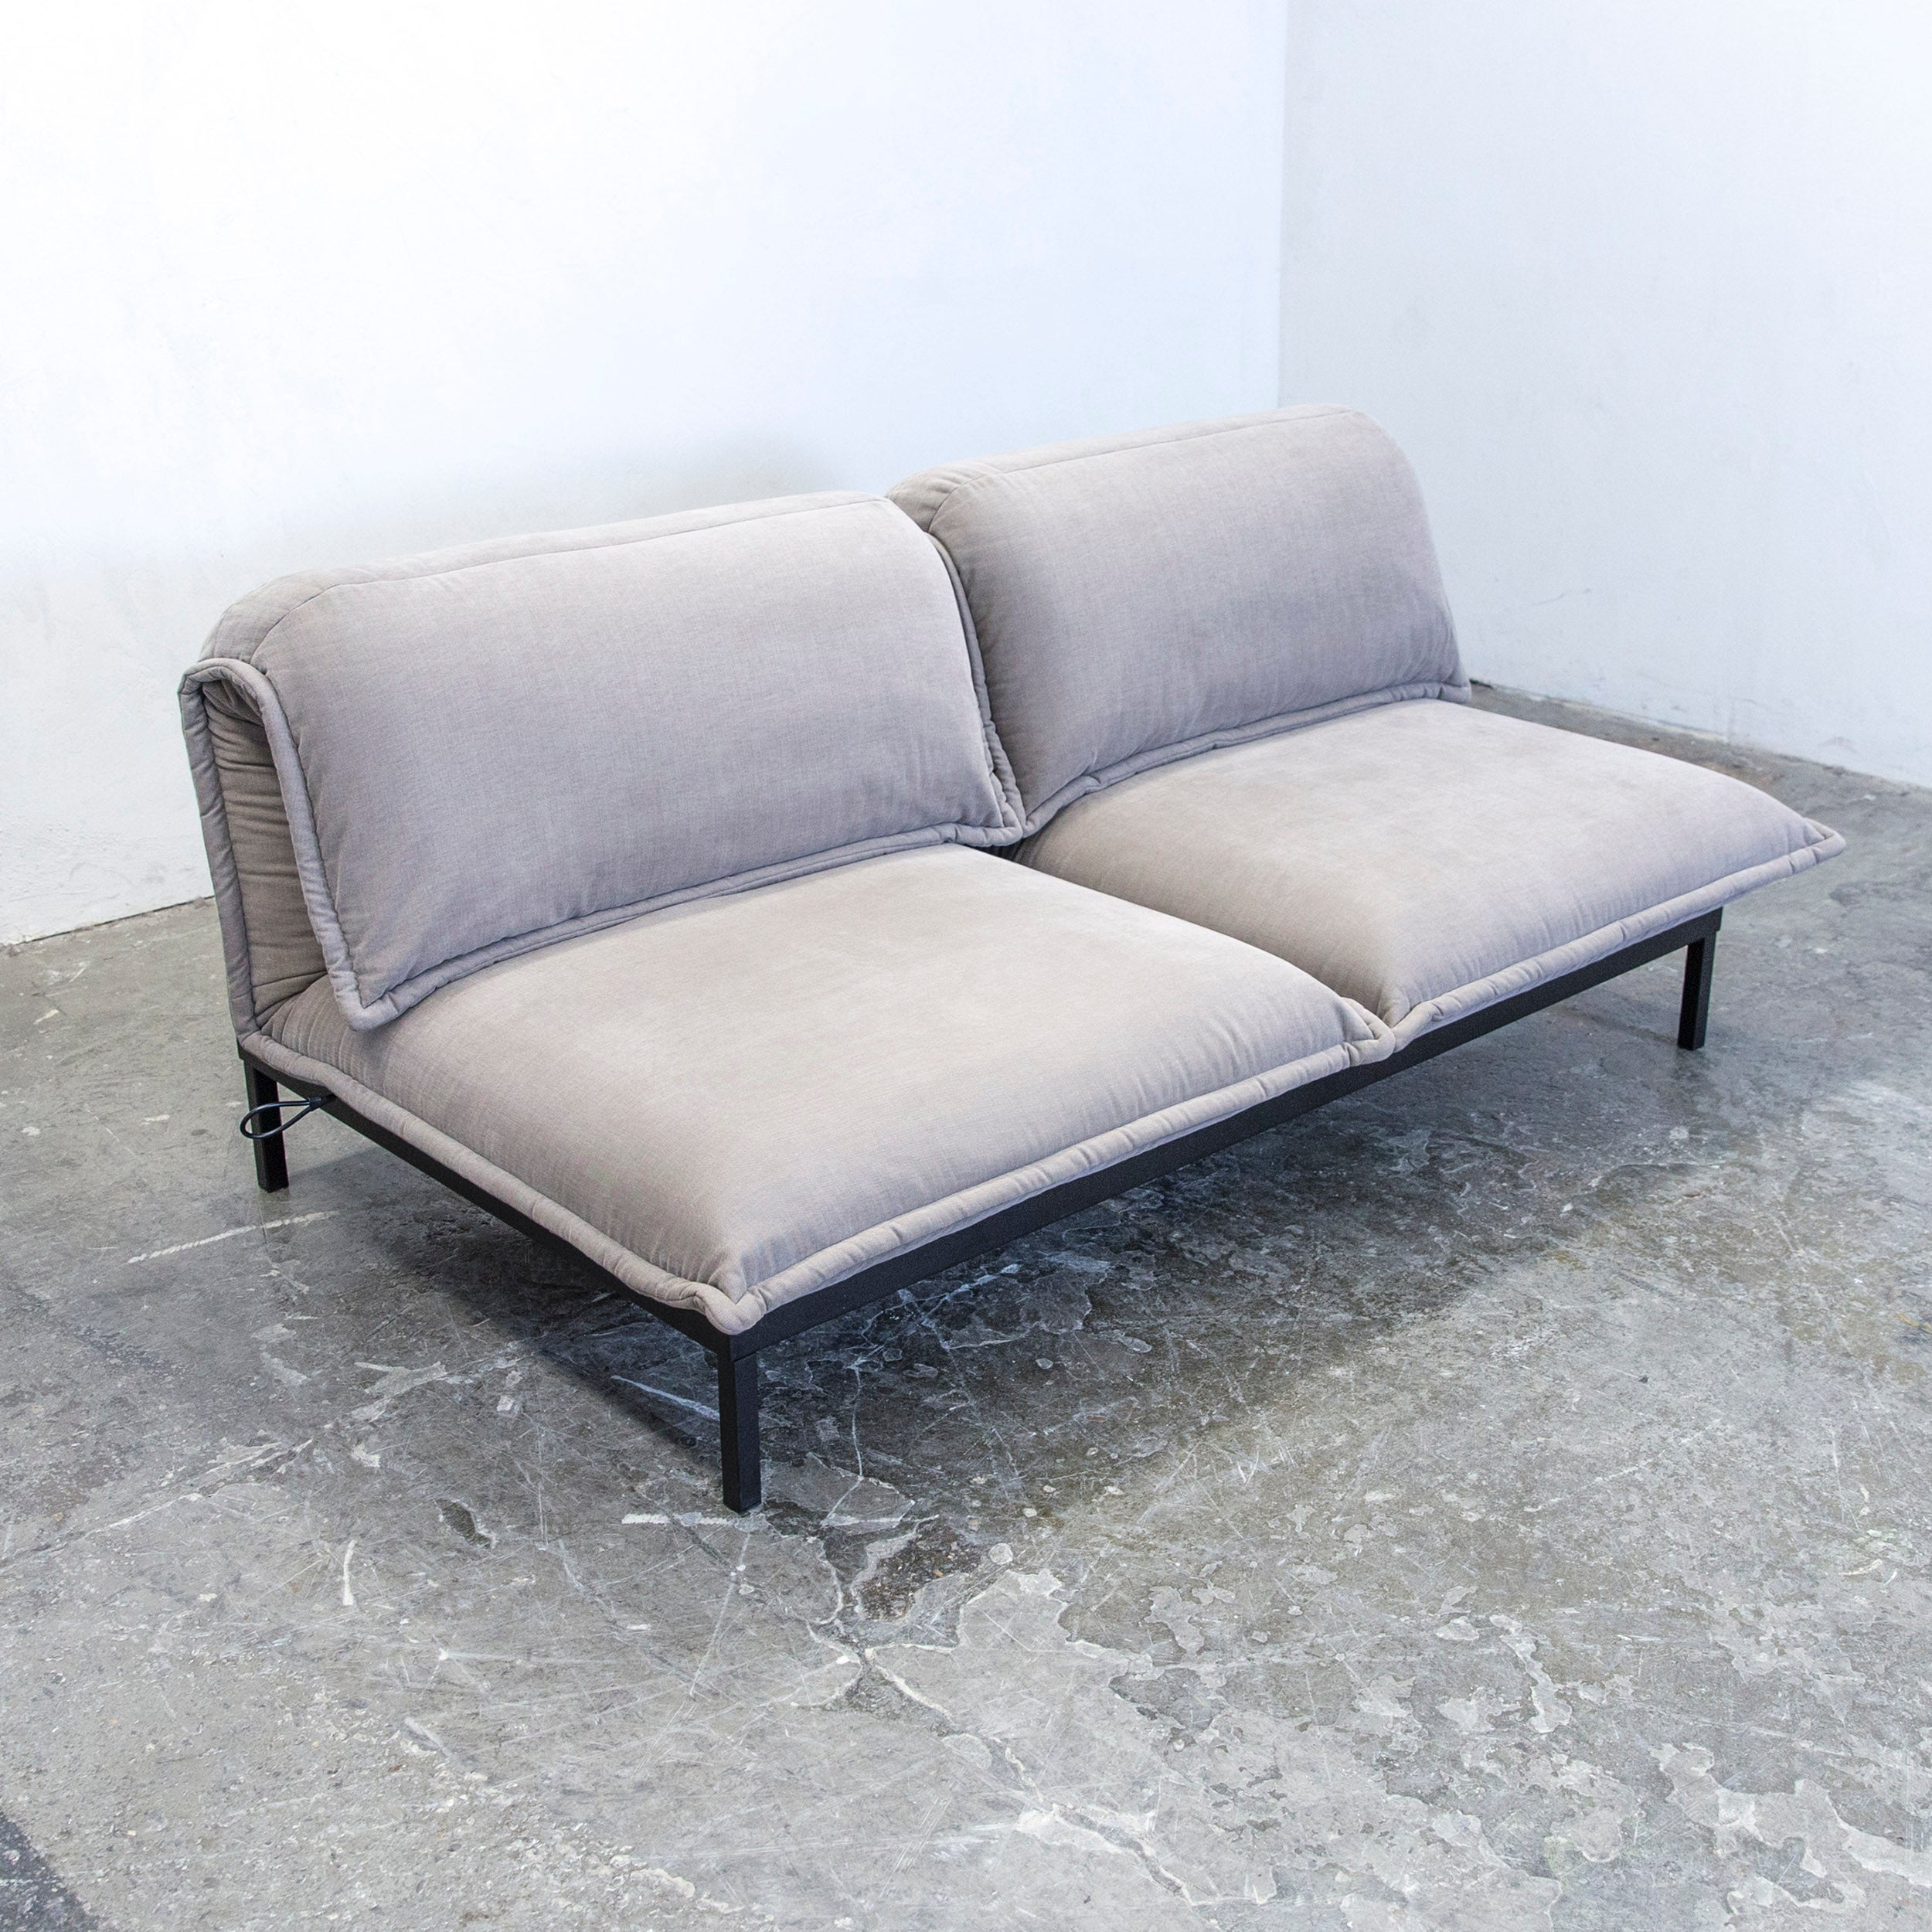 ledercouch modern interesting cheap ledersofa gebraucht sofa with awesome with couch leder. Black Bedroom Furniture Sets. Home Design Ideas